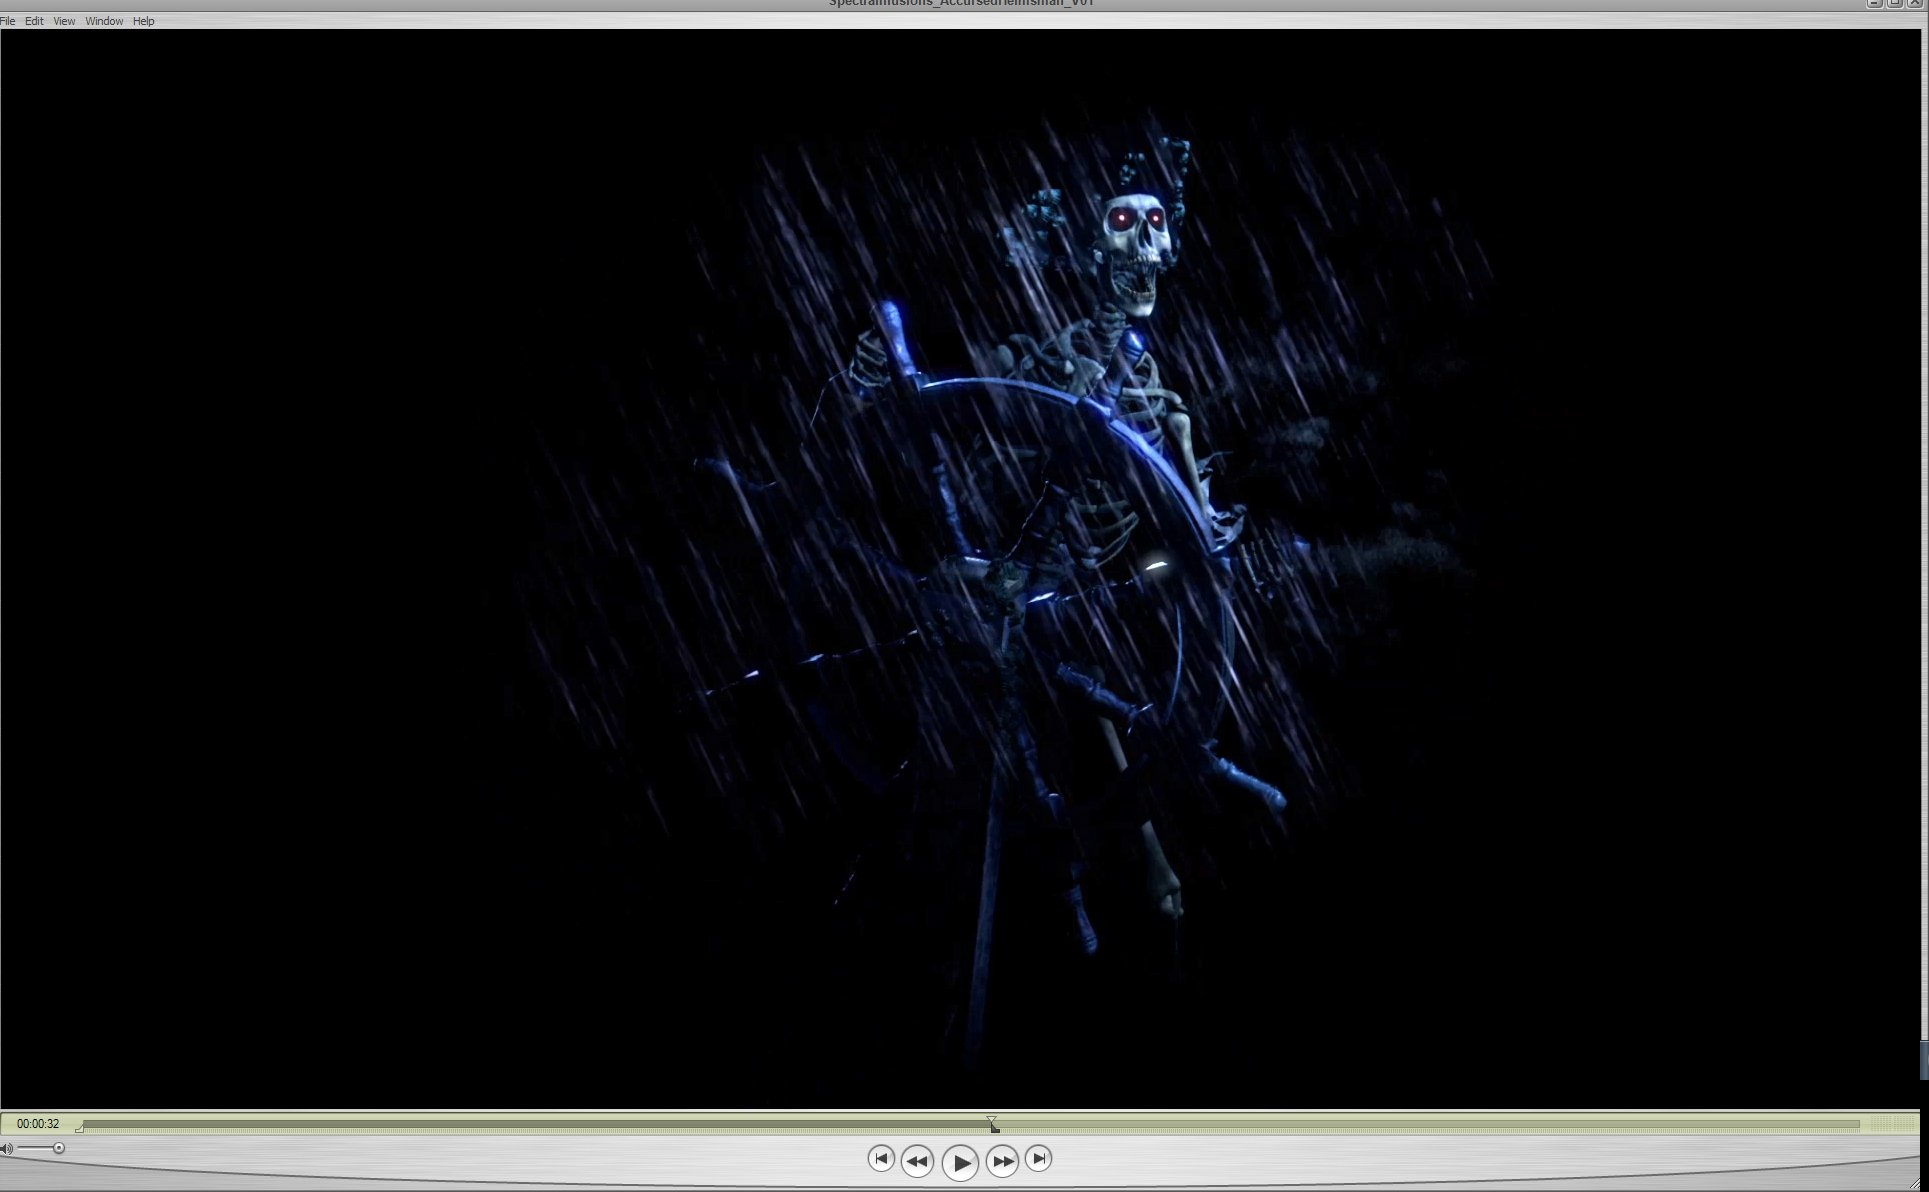 Spectral Illusions Ghosts & Spirits Compilation Video Projector Kit on USB with Reaper Brothers Rear Projection Screen.